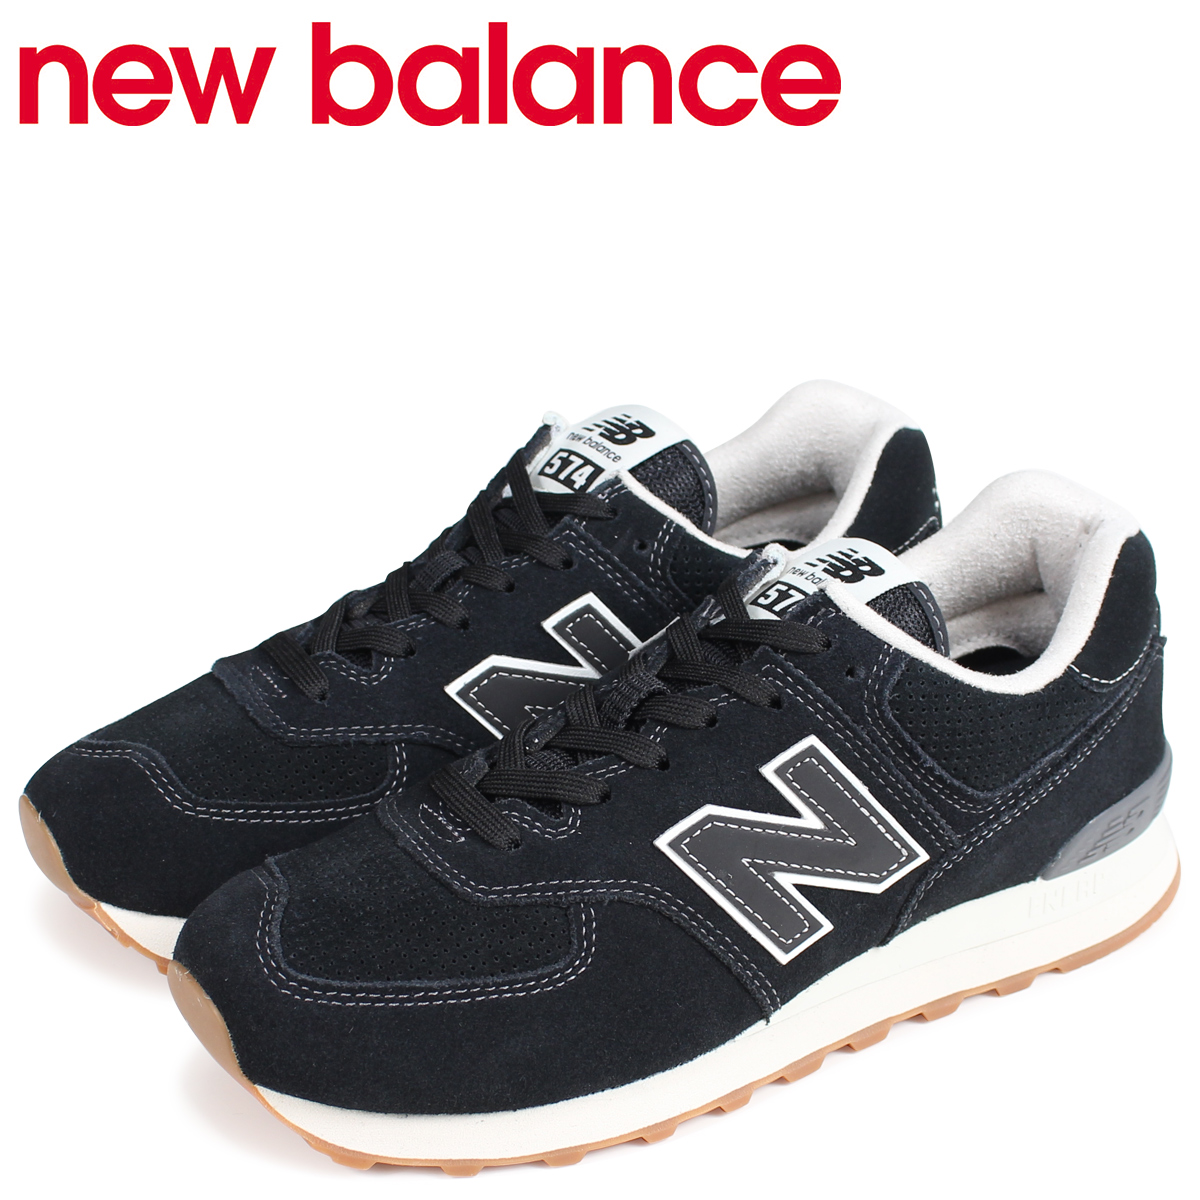 Sugar Online Shop  new balance 574 men s New Balance sneakers ML574ESE D  Wise black  9 12 Shinnyu load   8bfb13a5de0c